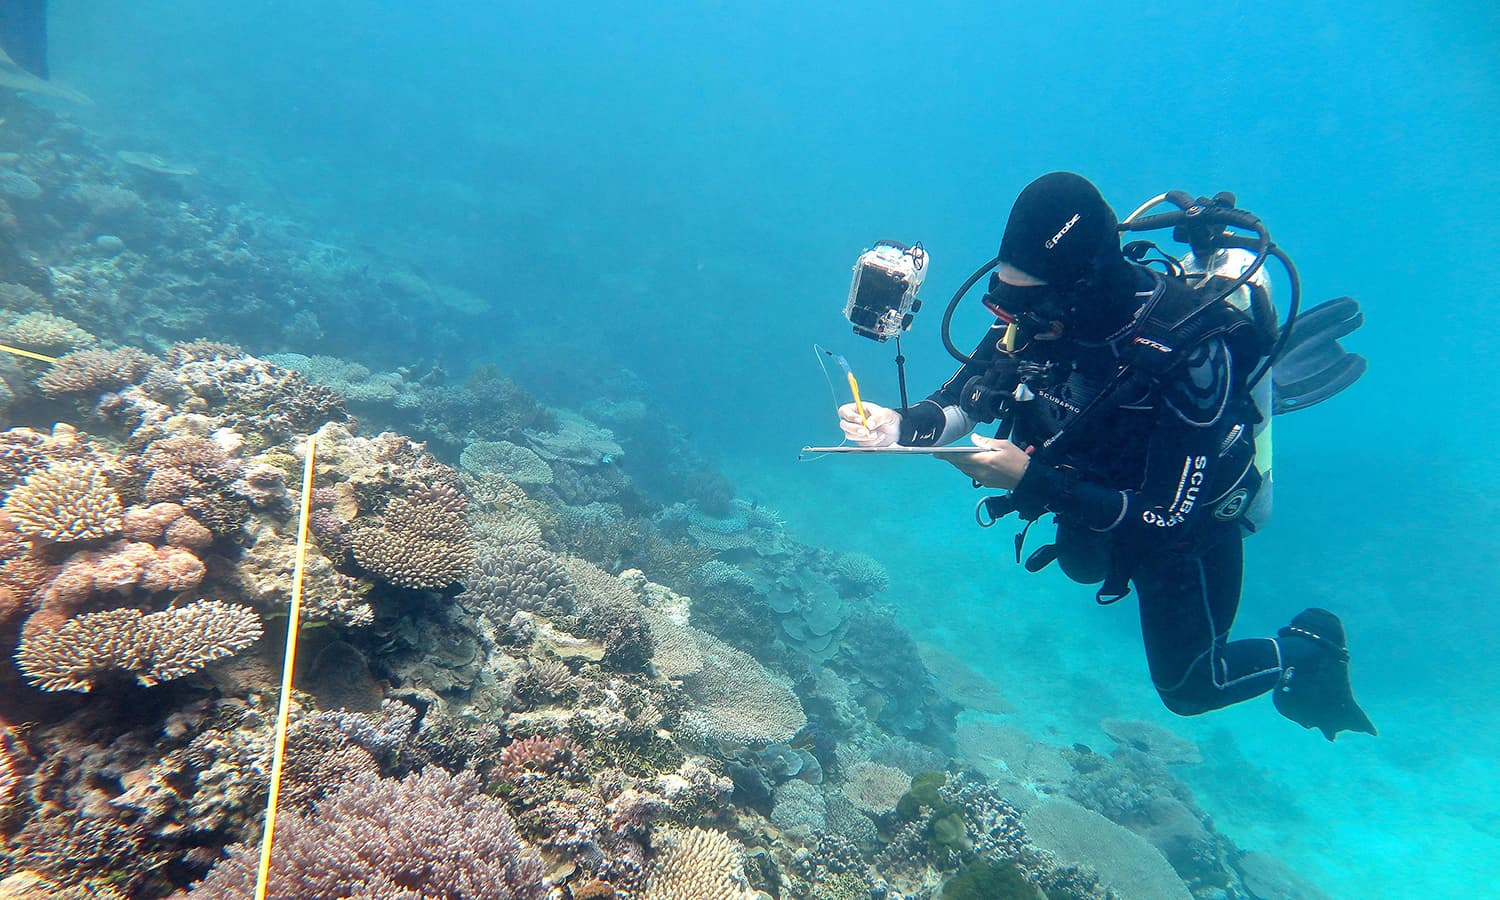 Largest coral die-off ever in Great Barrier Reef